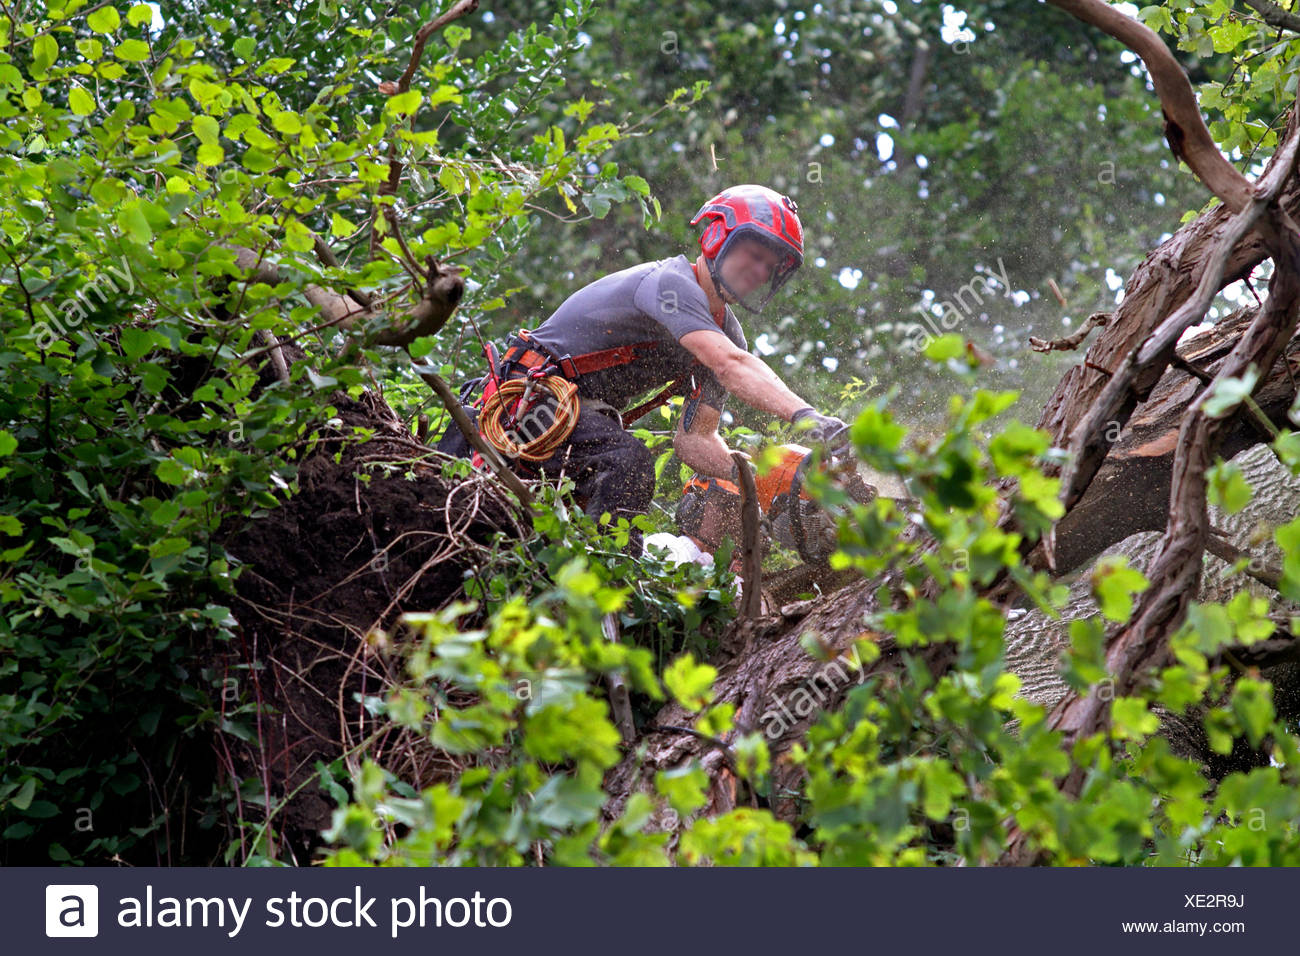 timber worker cutting down a tree, Germany Stock Photo